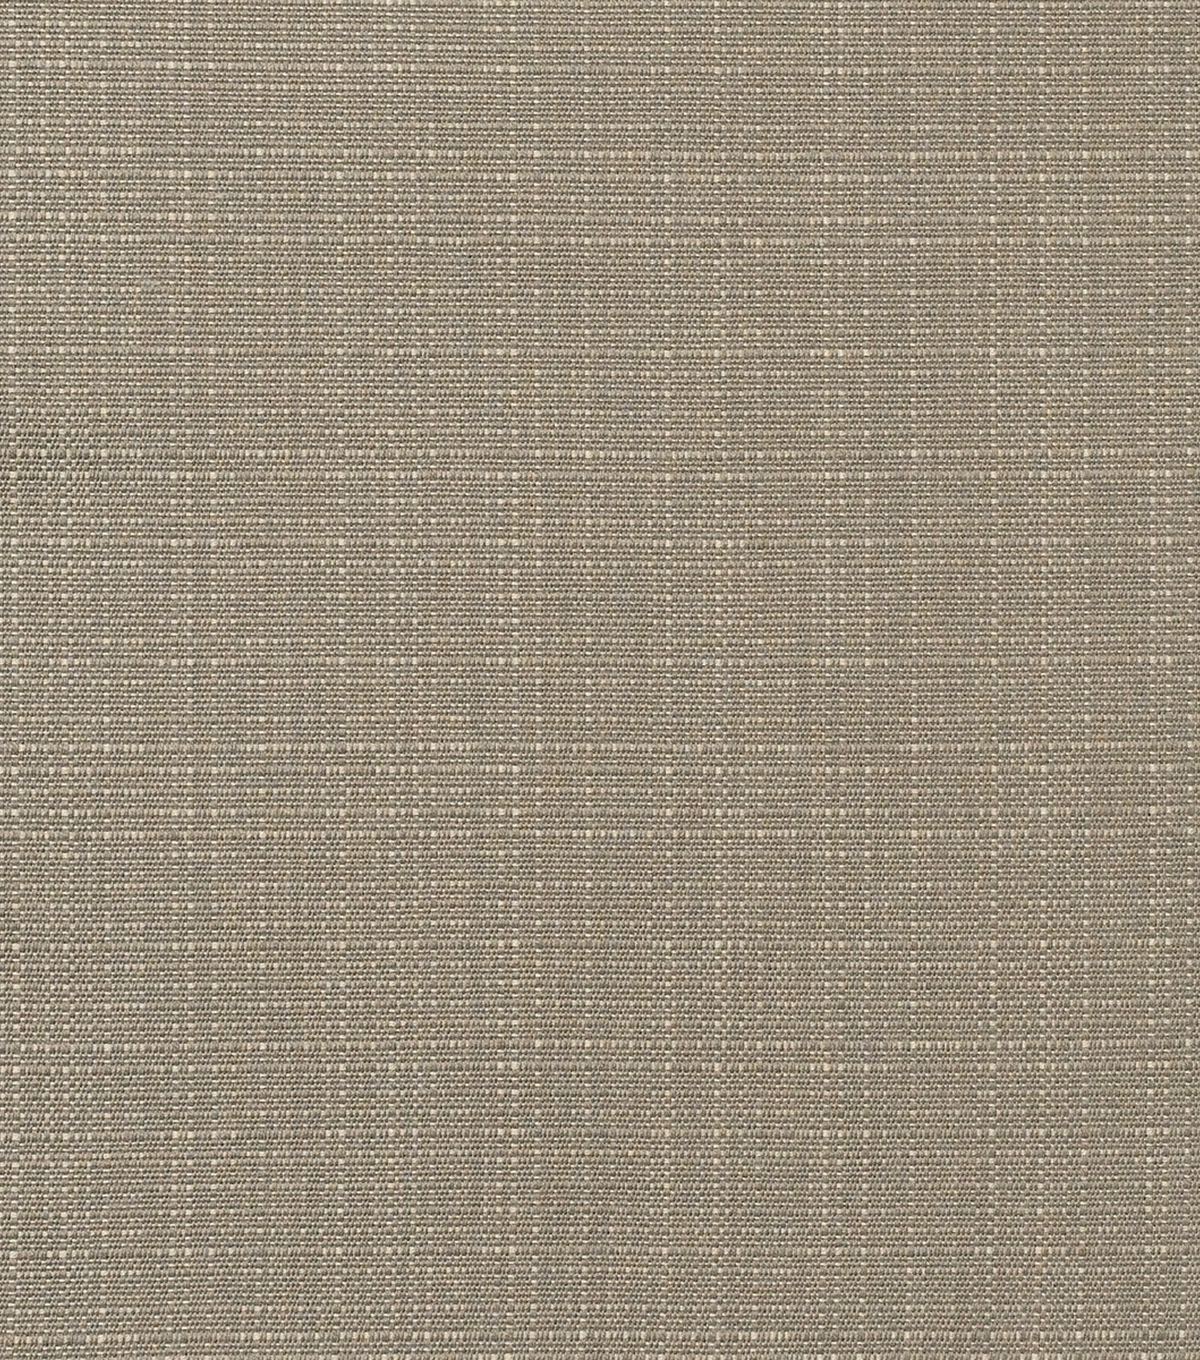 Sunbr Furn Linen 8374 Taupe Swatch